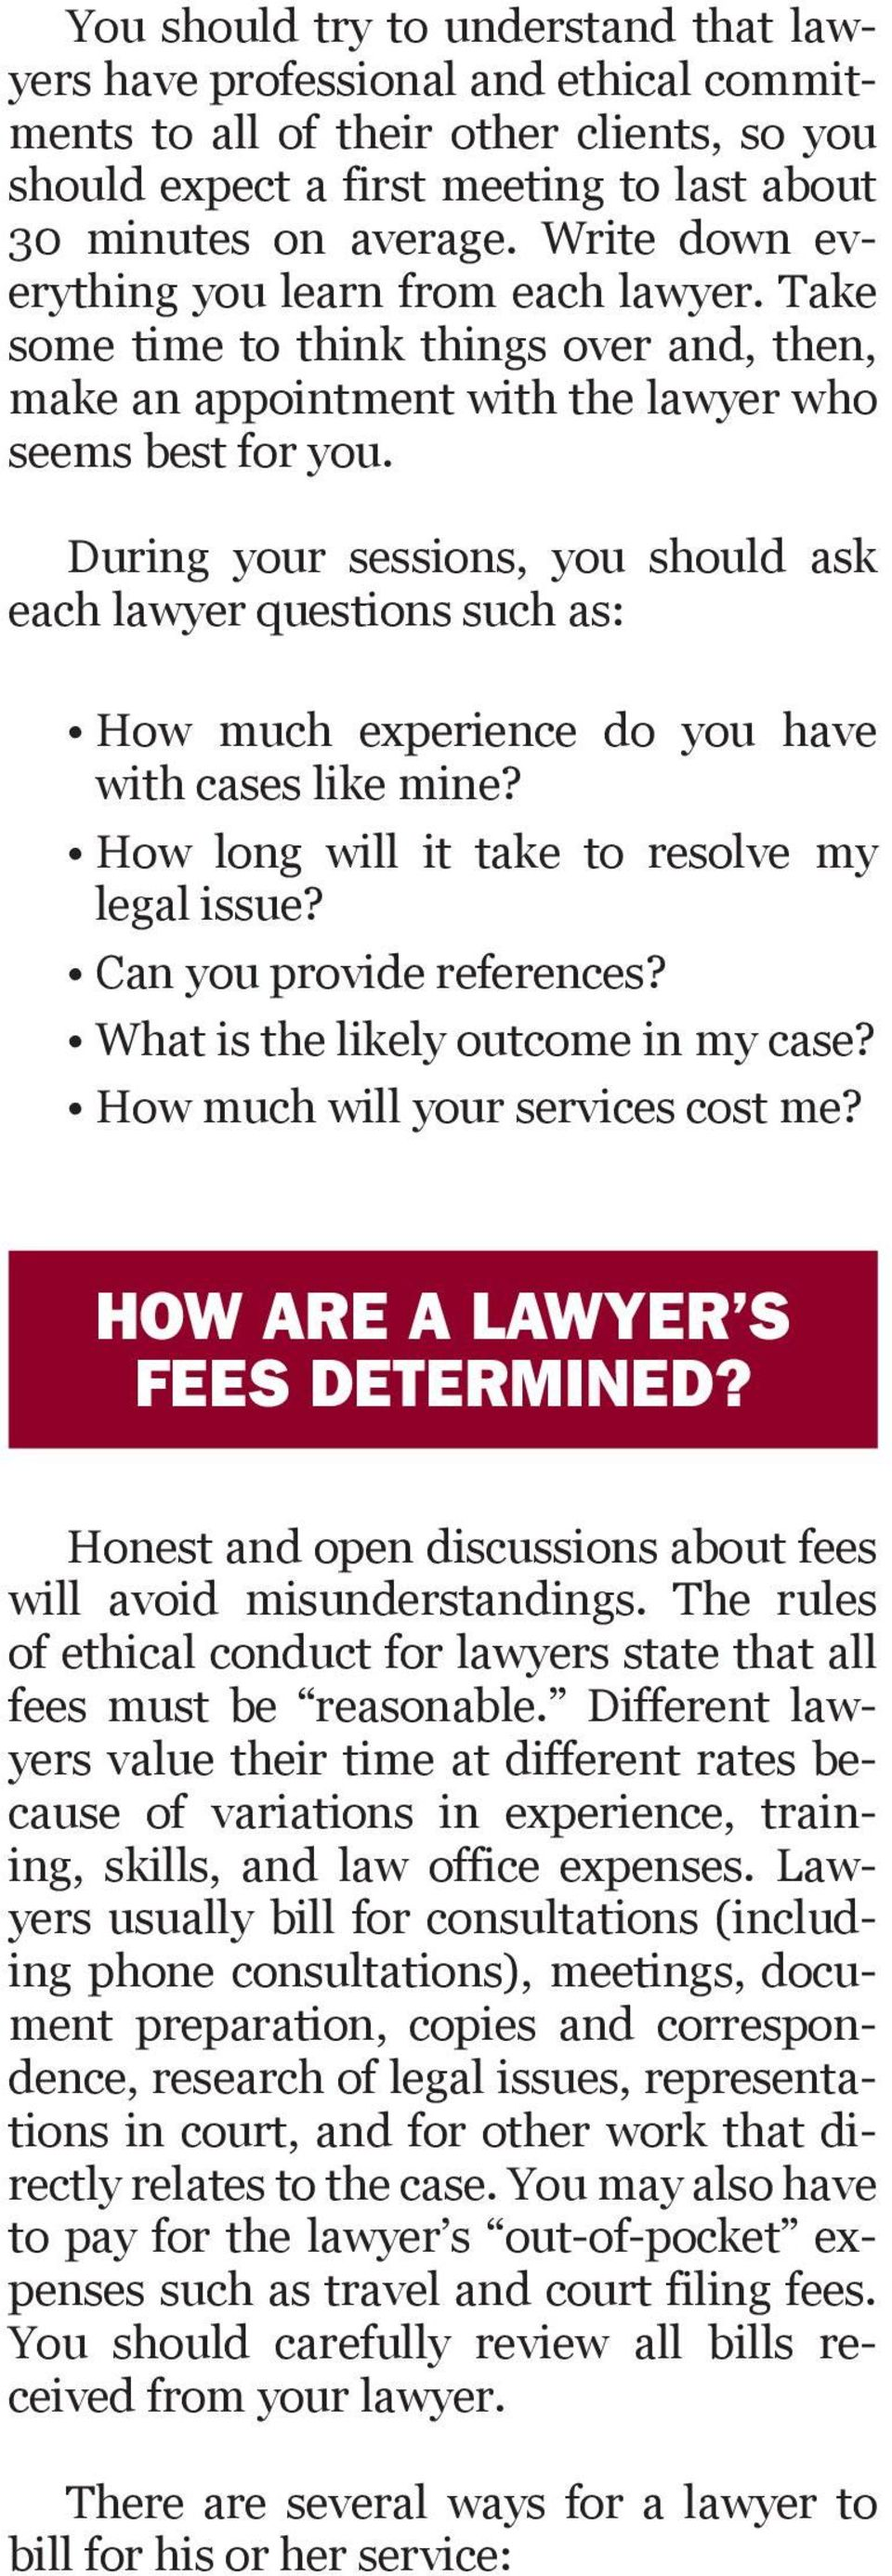 During your sessions, you should ask each lawyer questions such as: How much experience do you have with cases like mine? How long will it take to resolve my legal issue? Can you provide references?